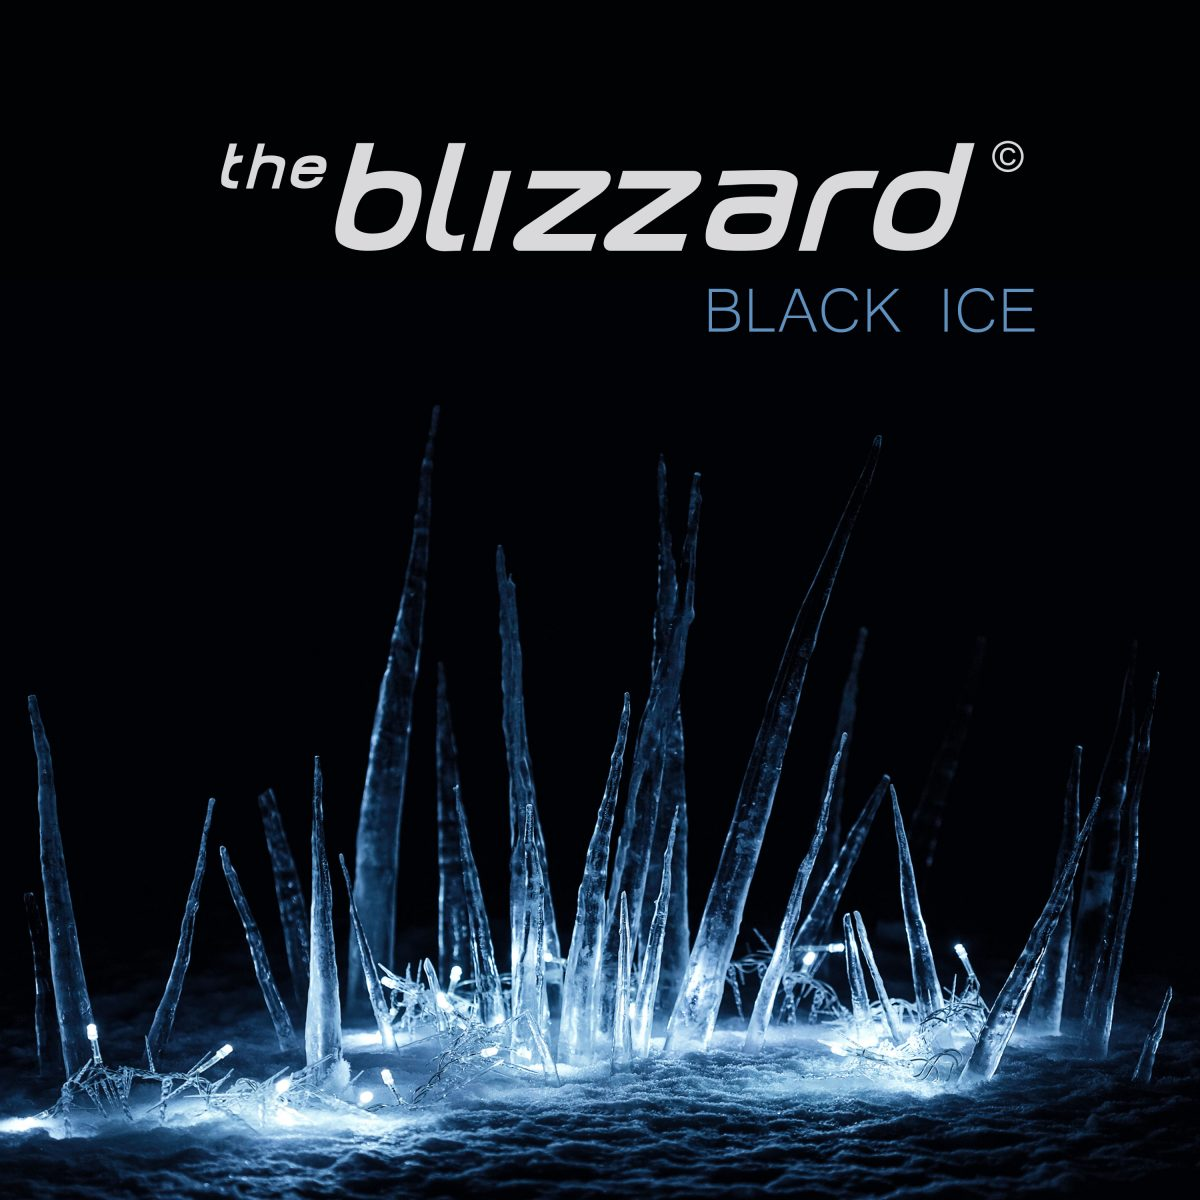 The Blizzard - Black Ice on Patreon